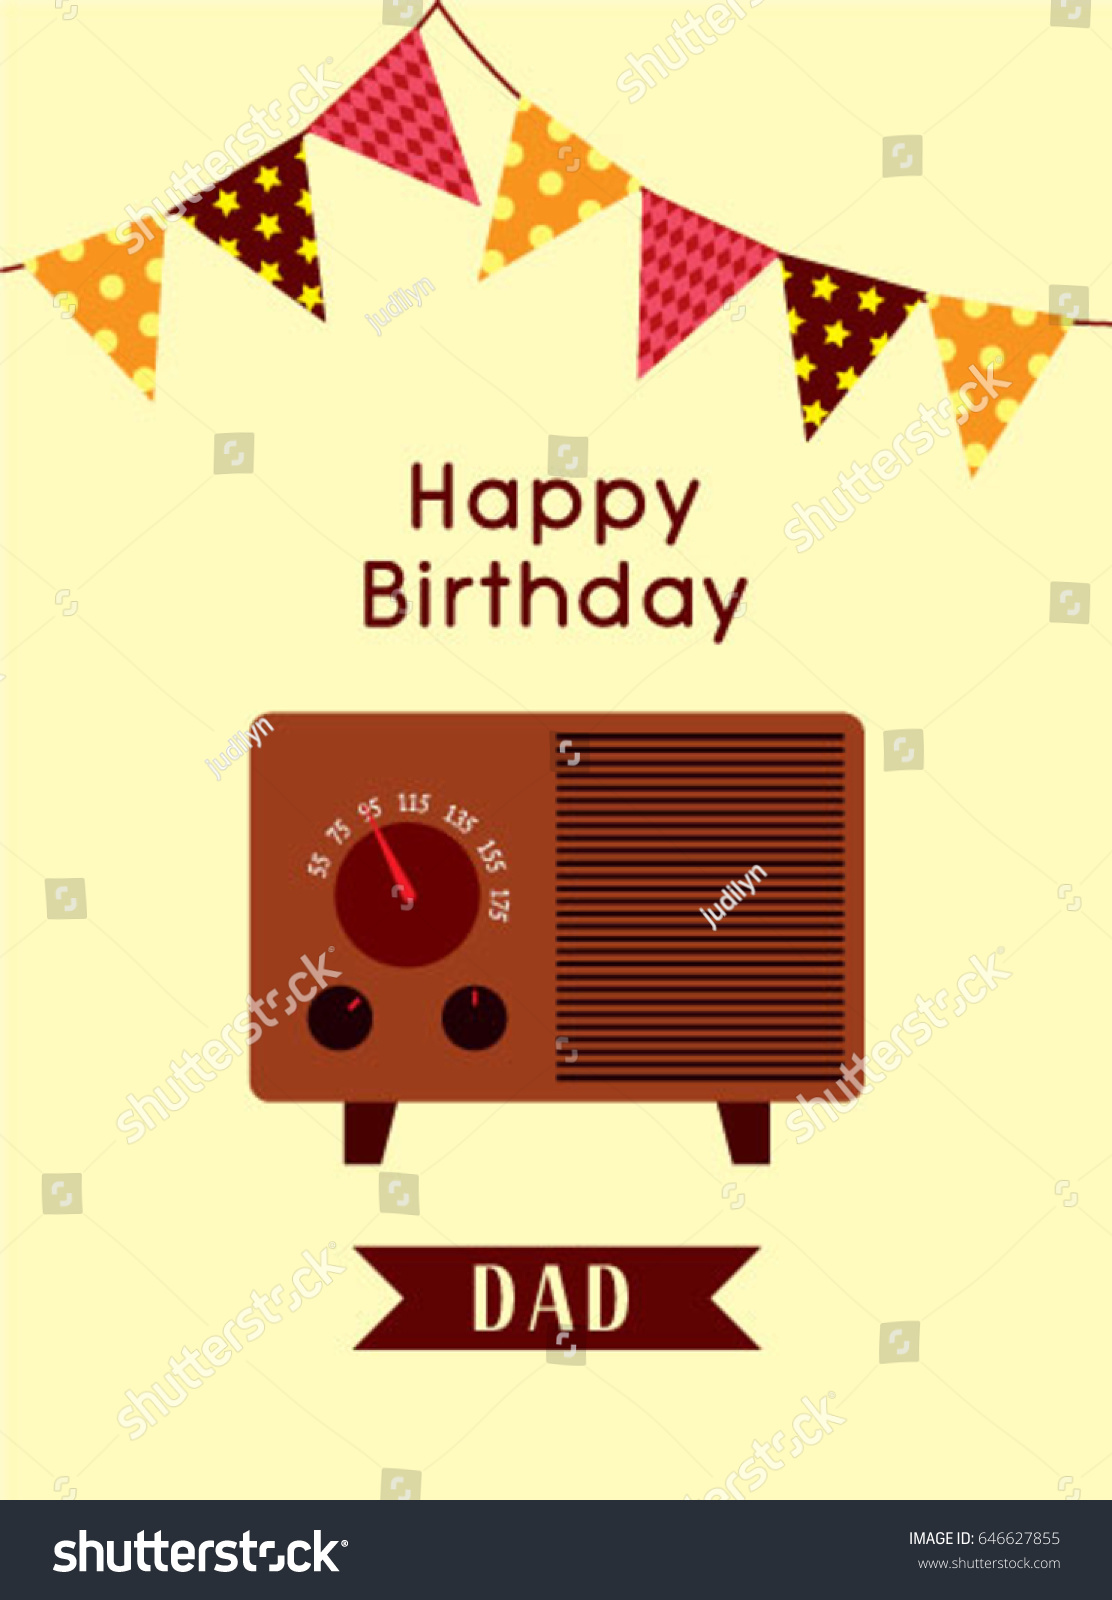 Happy Birthday Greeting Dad Vintage Radio Vector 646627855 – Birthday Greeting Dad